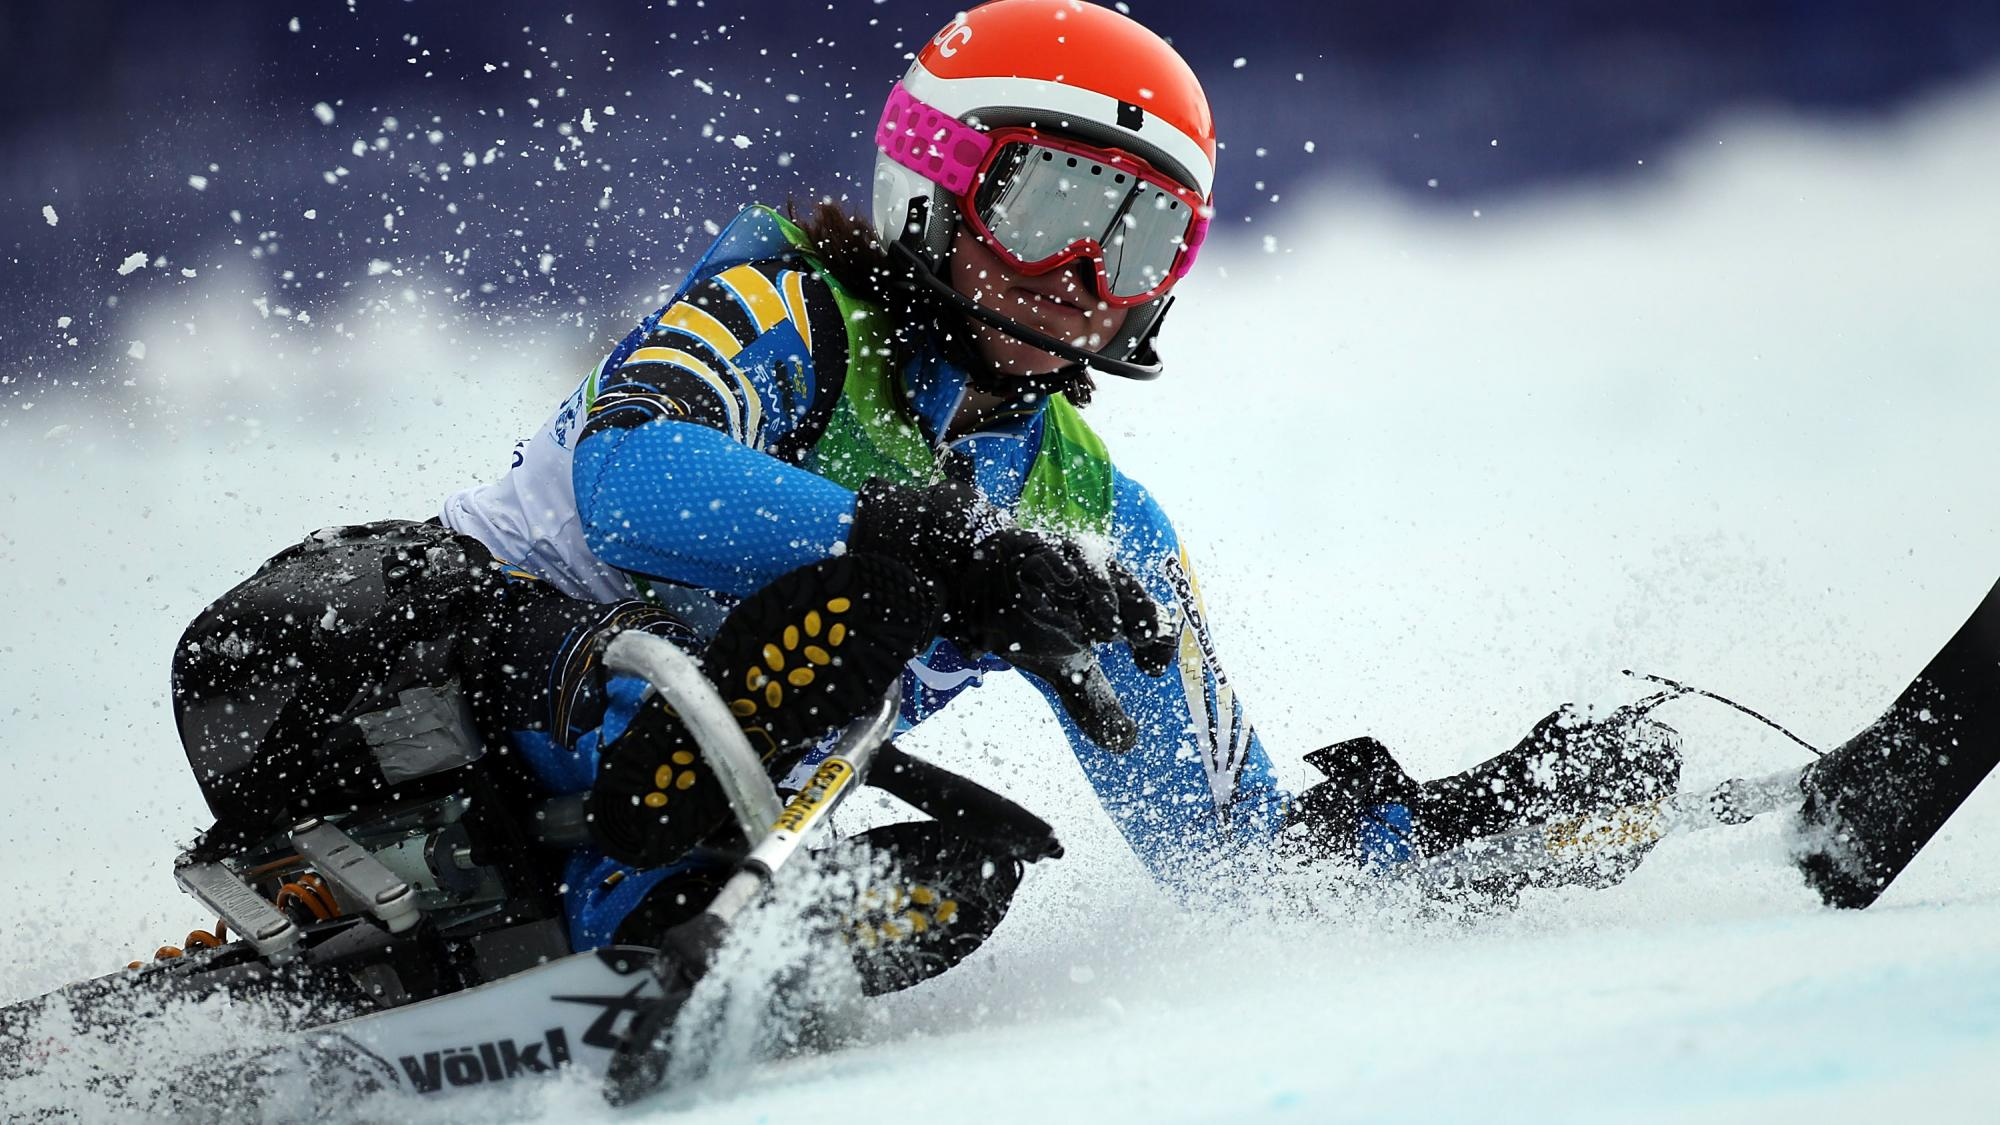 Tested athlete in alpine skiing in Vancouver Paralympics games